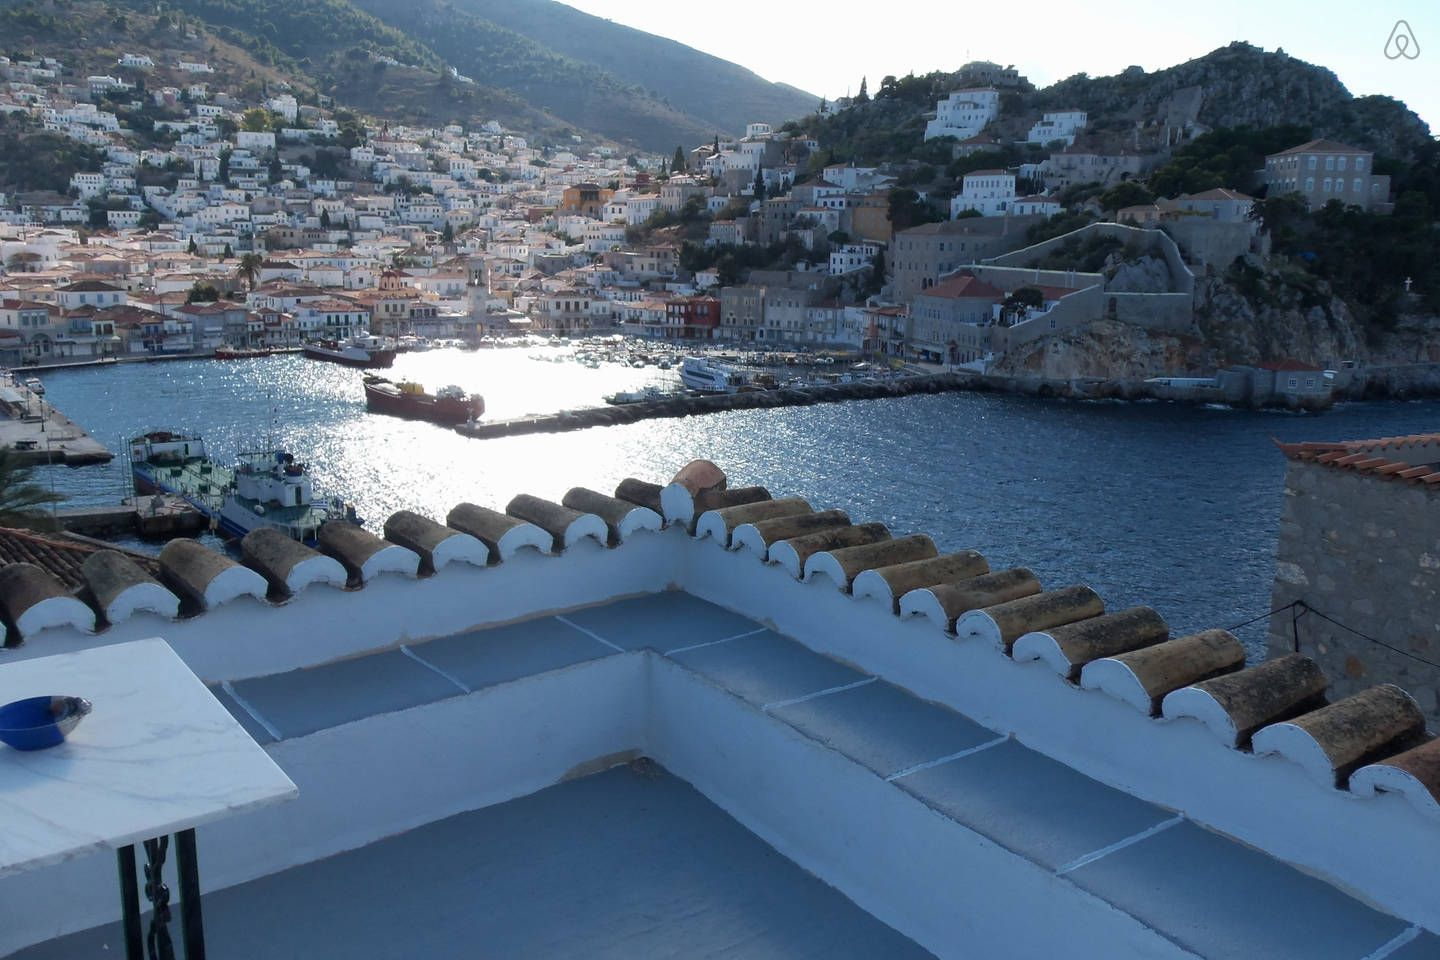 hydra airbnb amazing views patio private house 185 night